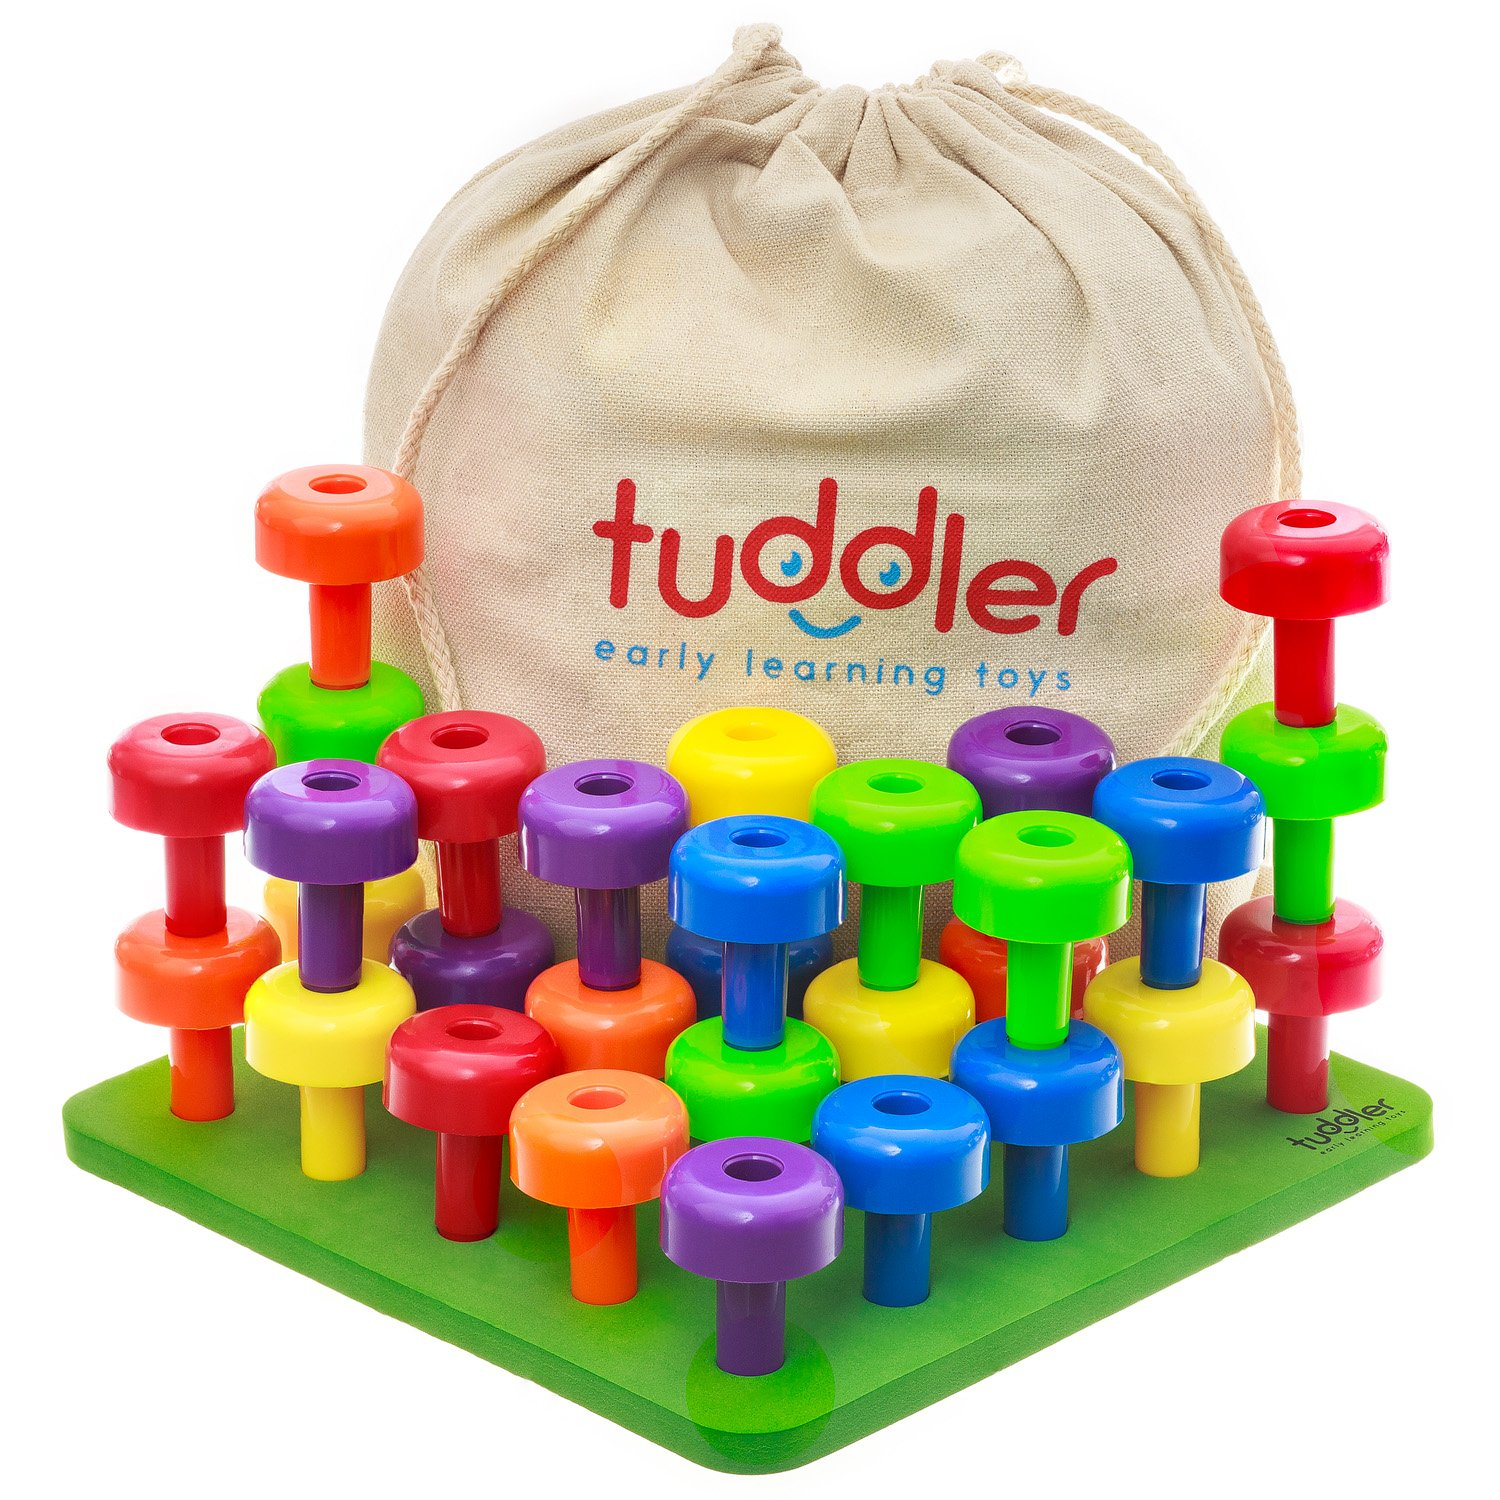 Tuddler Brightly Colored Stackable Pegs and Peg Board Set Montessori Educational Toy for Toddlers and Kids Pattern Card Drawstring Backpack for Portability and Neat Storage Ebook